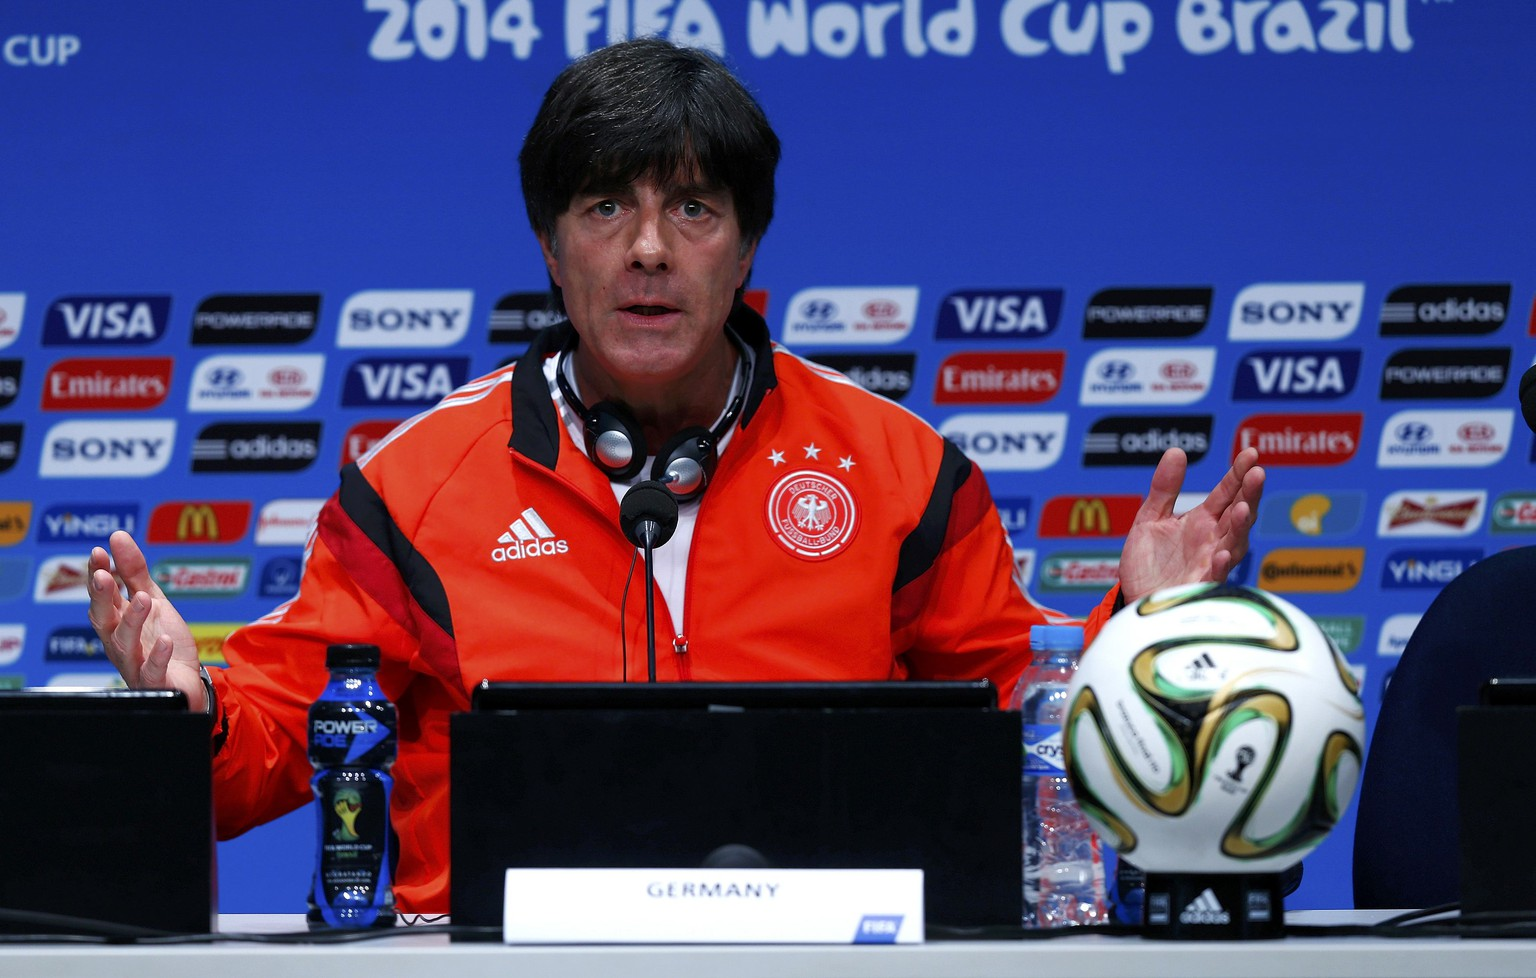 Germany's coach Joachim Loew gestures during a news conference at the Maracana stadium in Rio de Janeiro July 12, 2014, ahead of their 2014 World Cup Final soccer match against the Argentina on Sunday.    REUTERS/Eddie Keogh (BRAZIL  - Tags: SOCCER SPORT WORLD CUP)